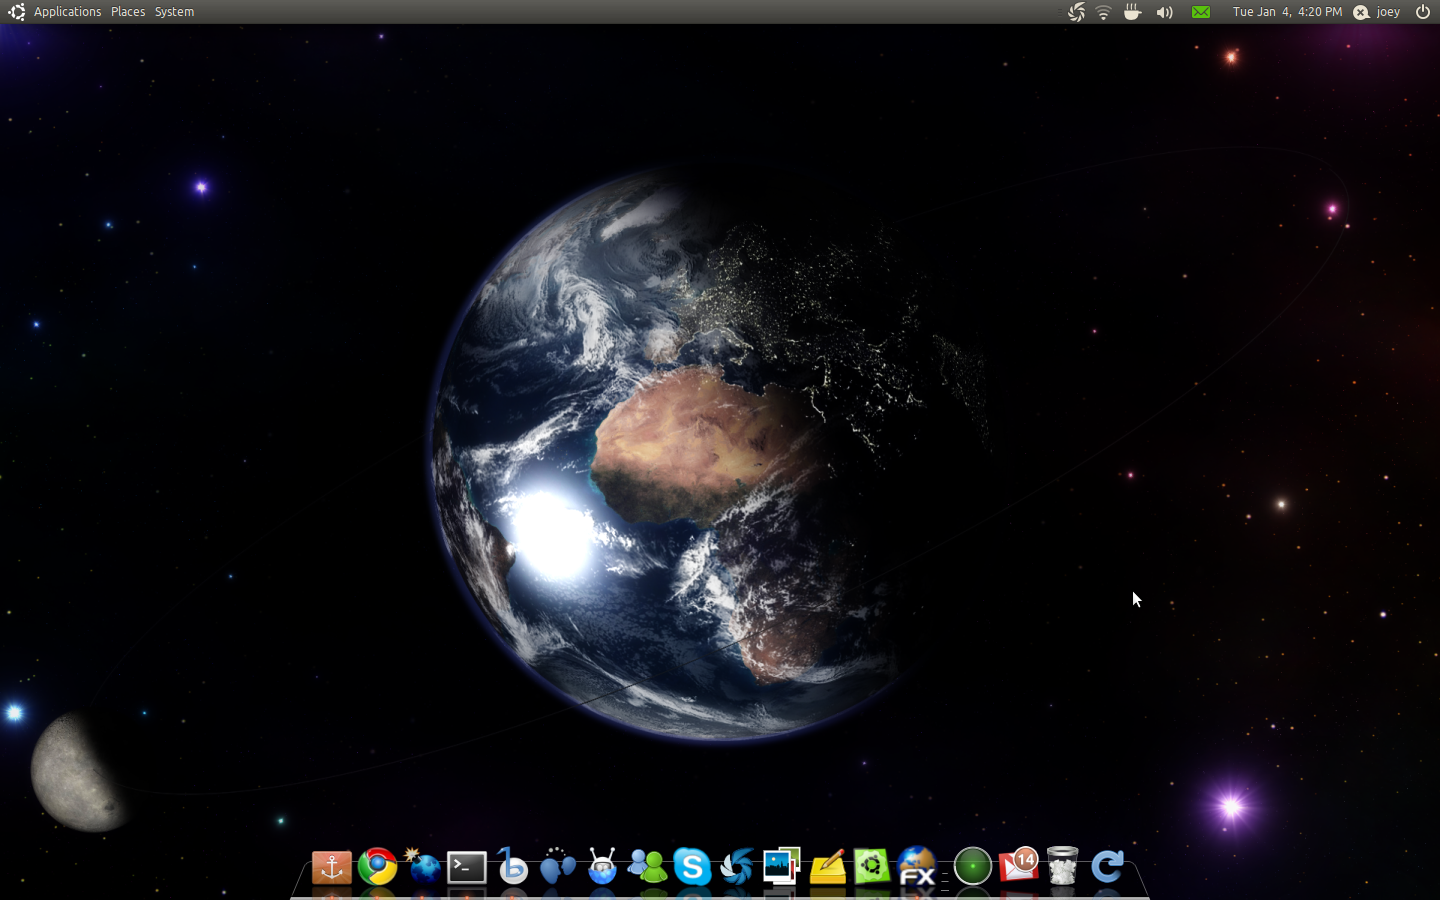 hq real-time earth wallpaper for ubuntu: xplanetfx - omg! ubuntu!